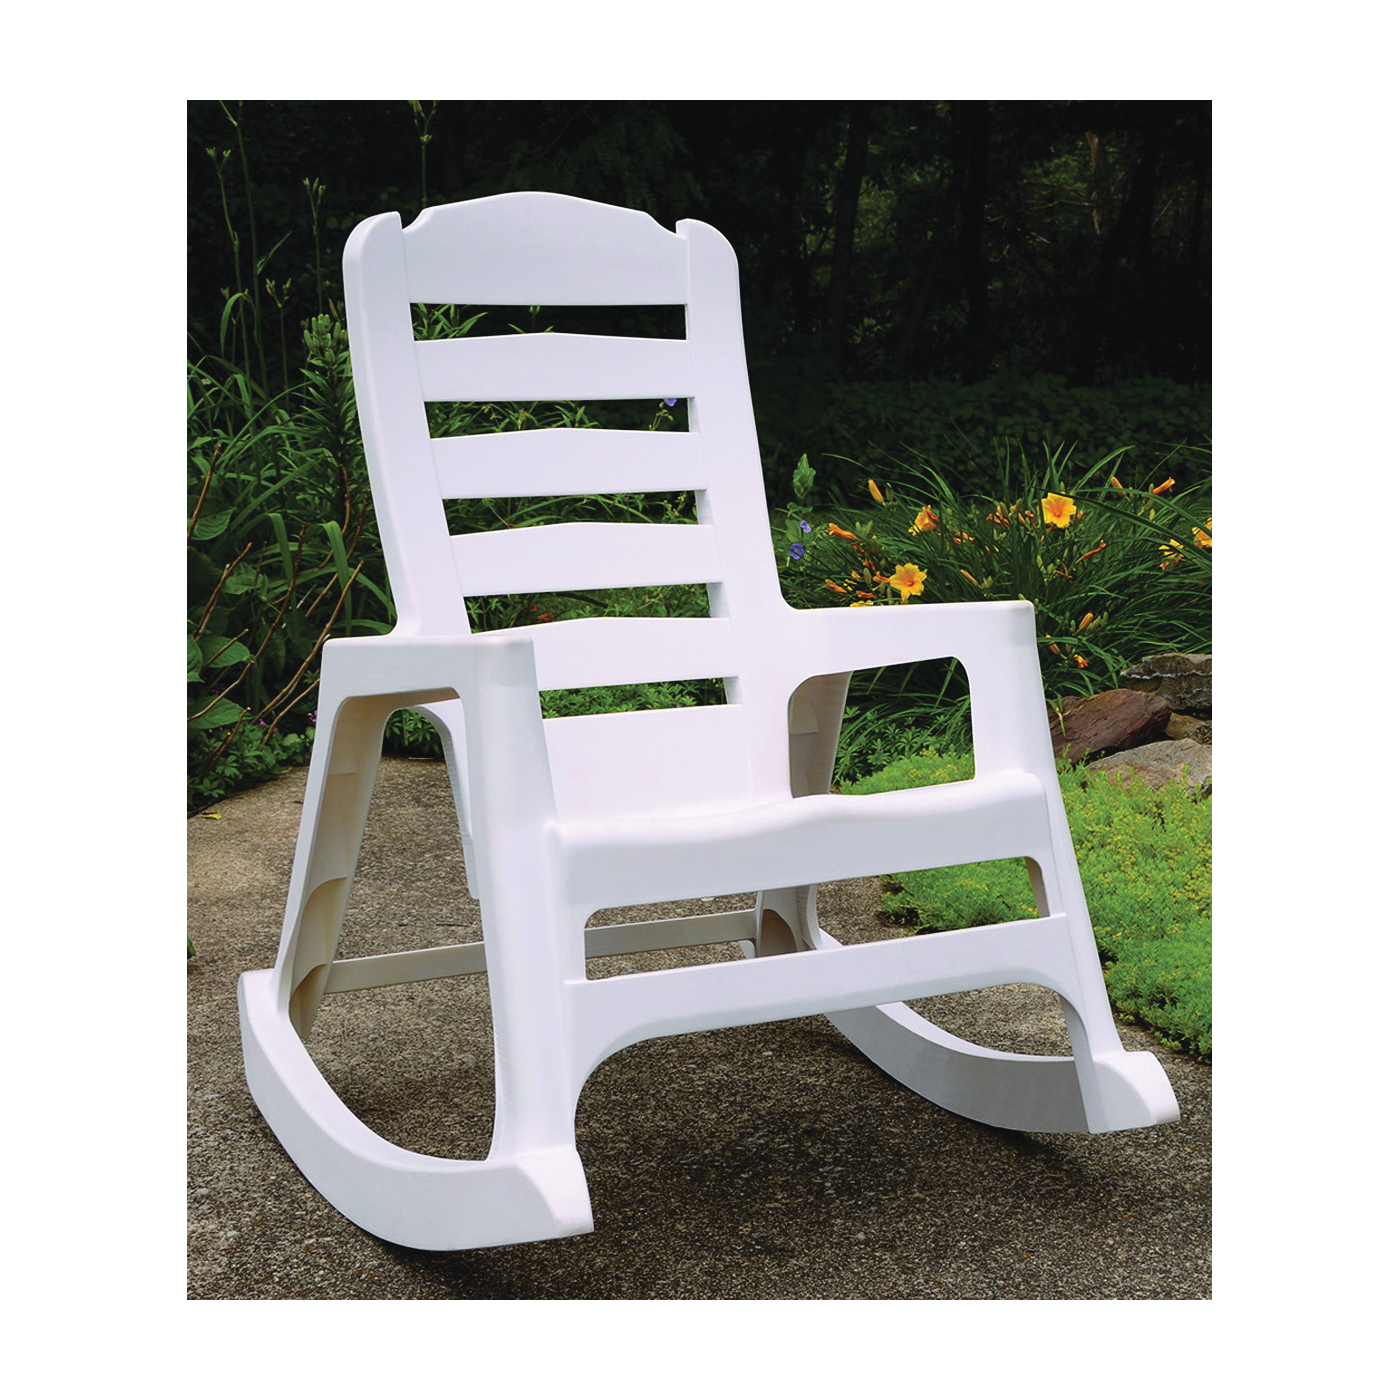 Picture of Adams Big Easy 8080-48-3700 Stacking Rocking Chair, 29.62 in OAW, 36.9 in OAD, 41.01 in OAH, Polypropylene, White